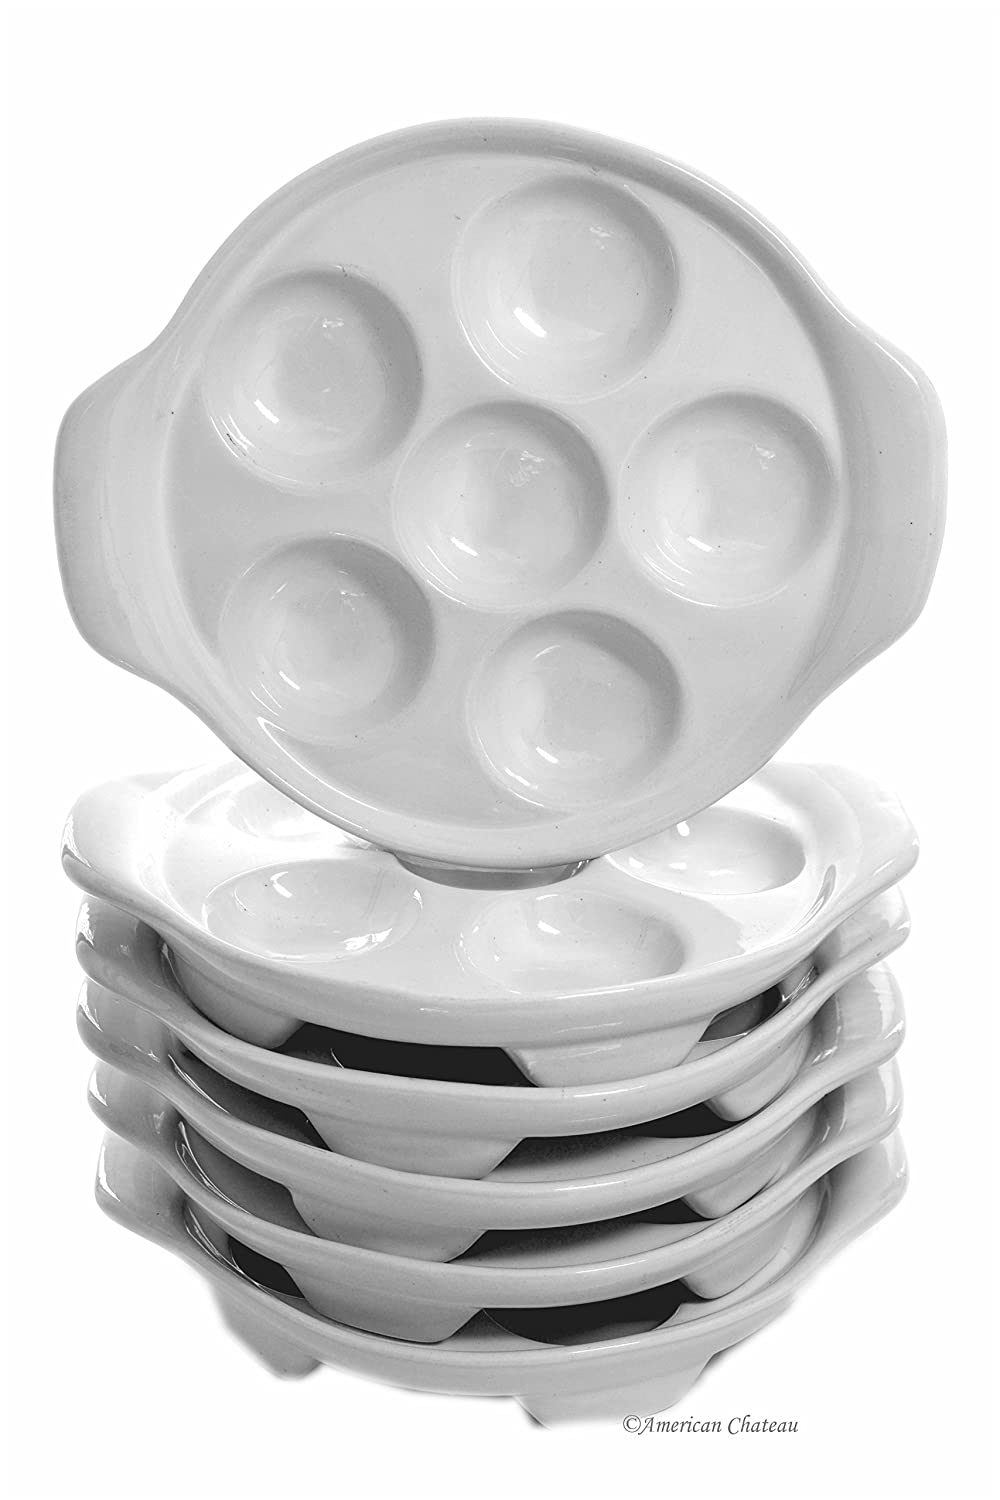 Set 6 Bakeware White Porcelain Snail Mushroom Escargot Casserole Dishes Plates American Chateau